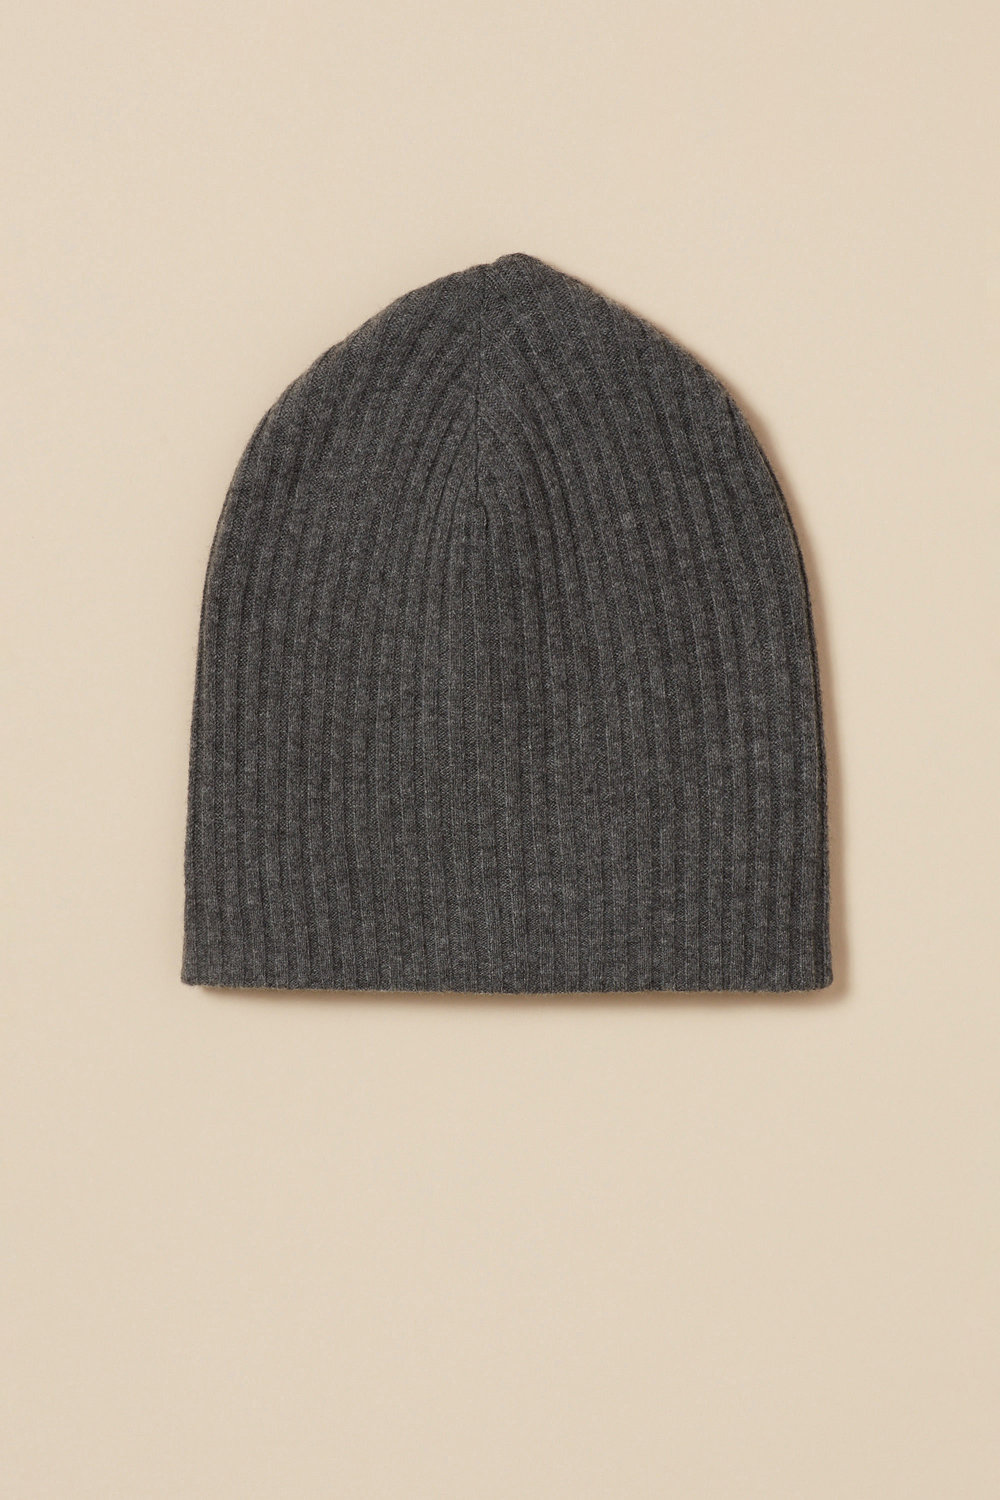 Ribbed wool light & warm tuque